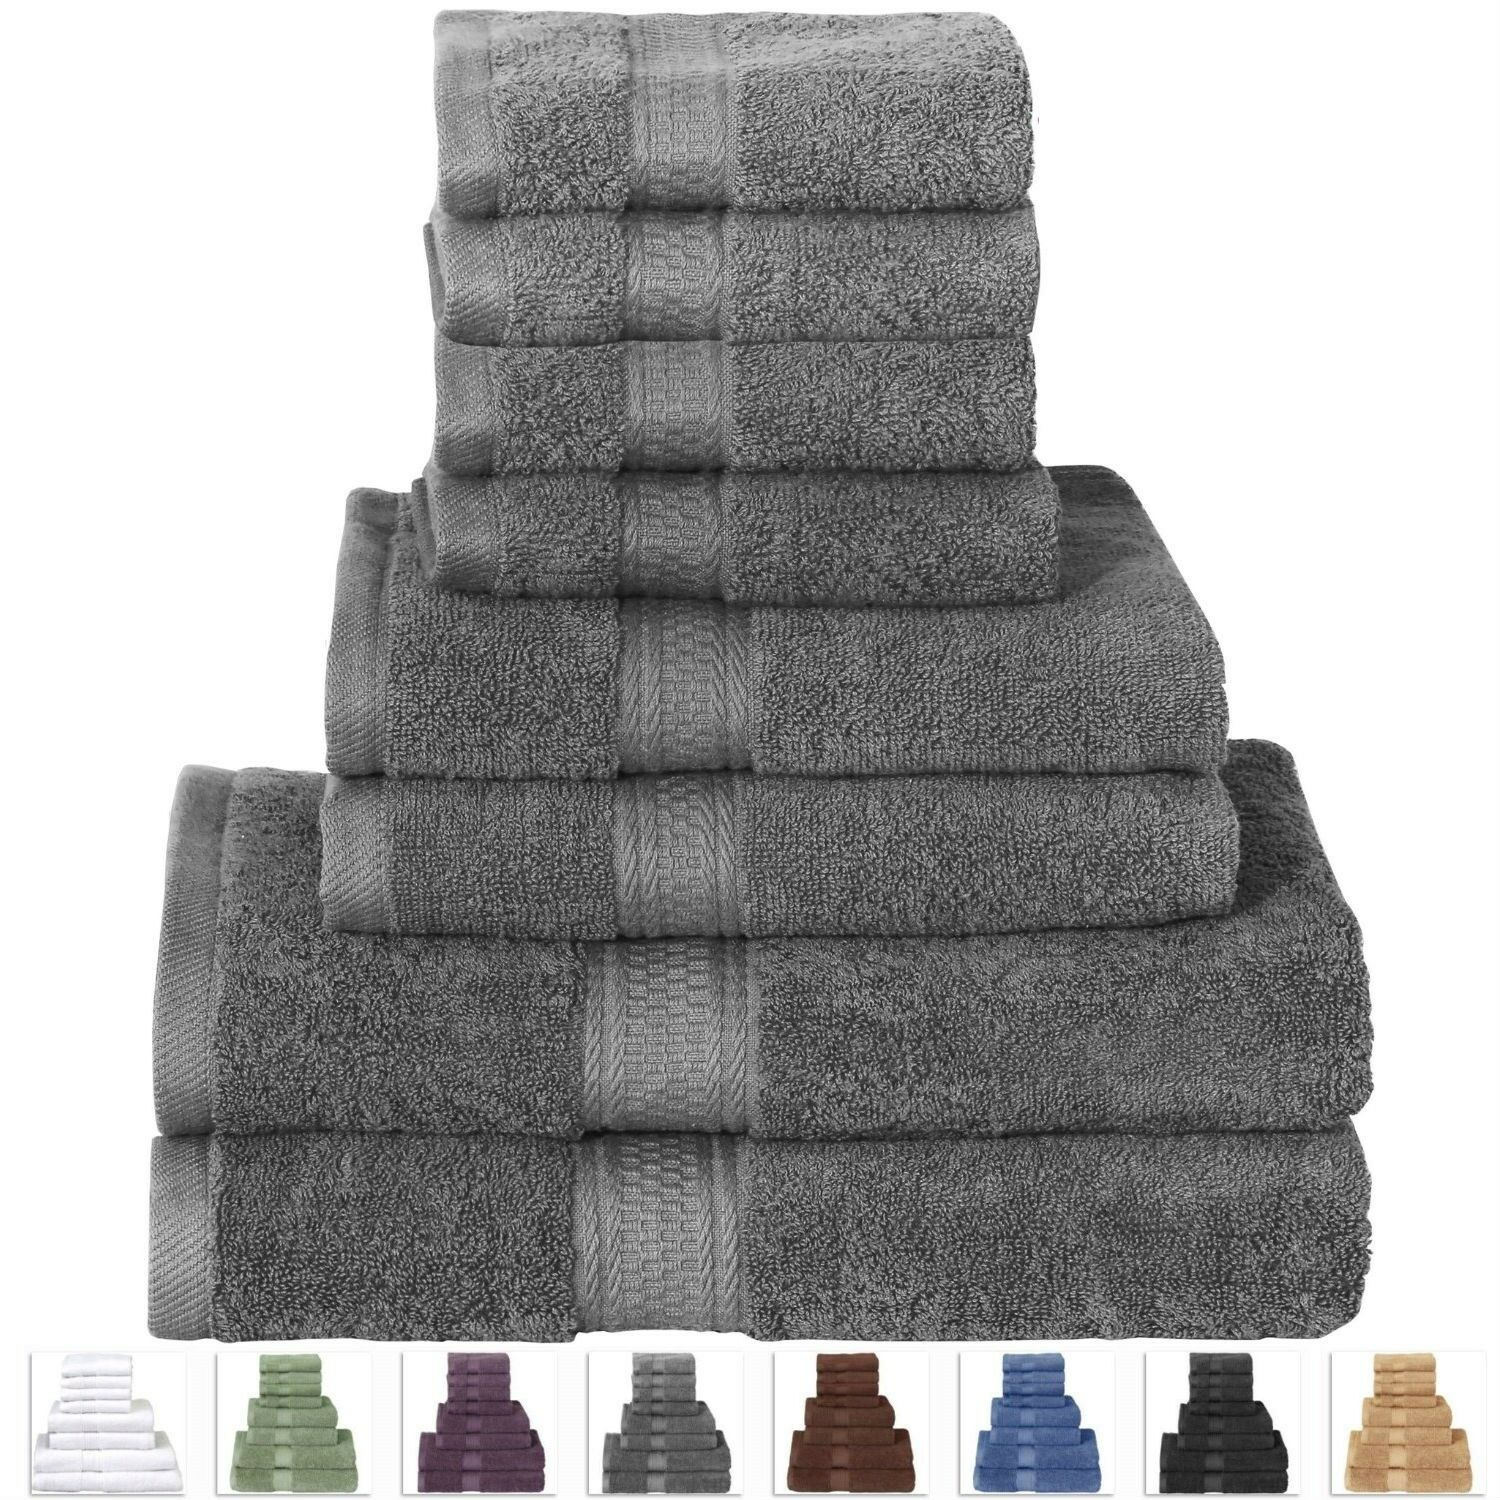 BATH TOWEL SET -8 PIECE-6 DIFFERENT FarbeS TO CHOOSE FROM--grau SHOWN